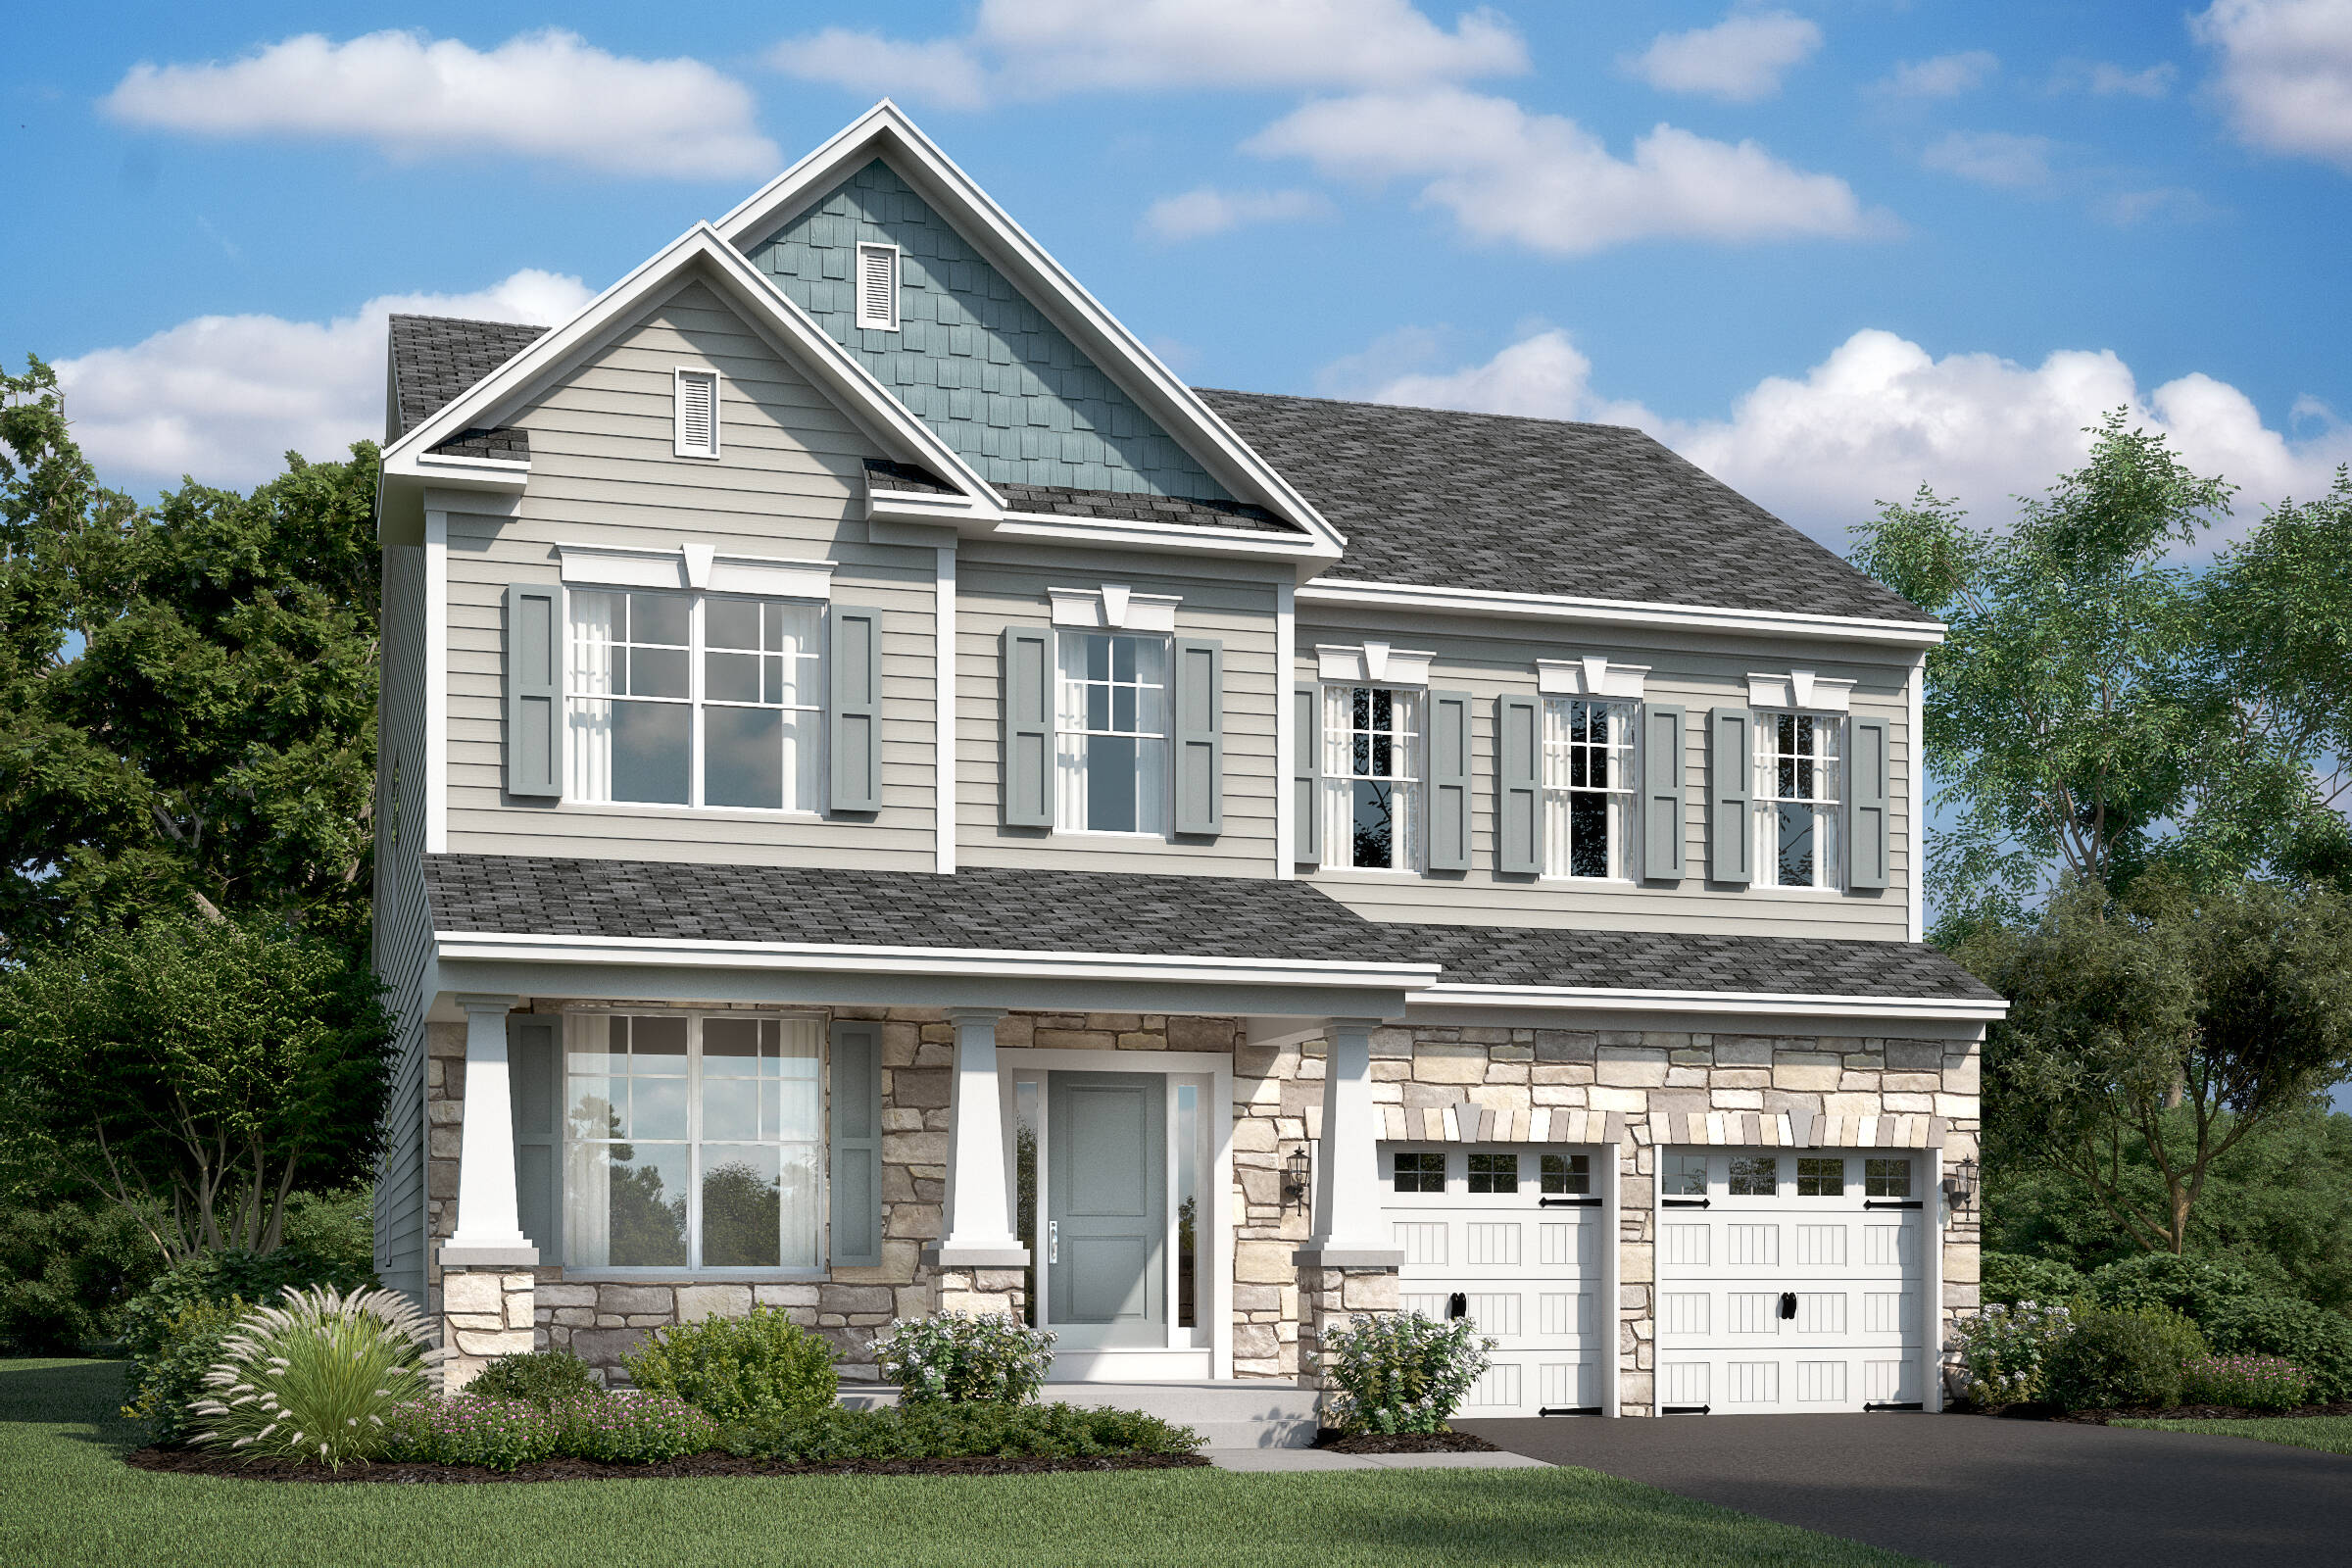 callahan-i-bt-new-homes-at-eden-terrace-in-maryland